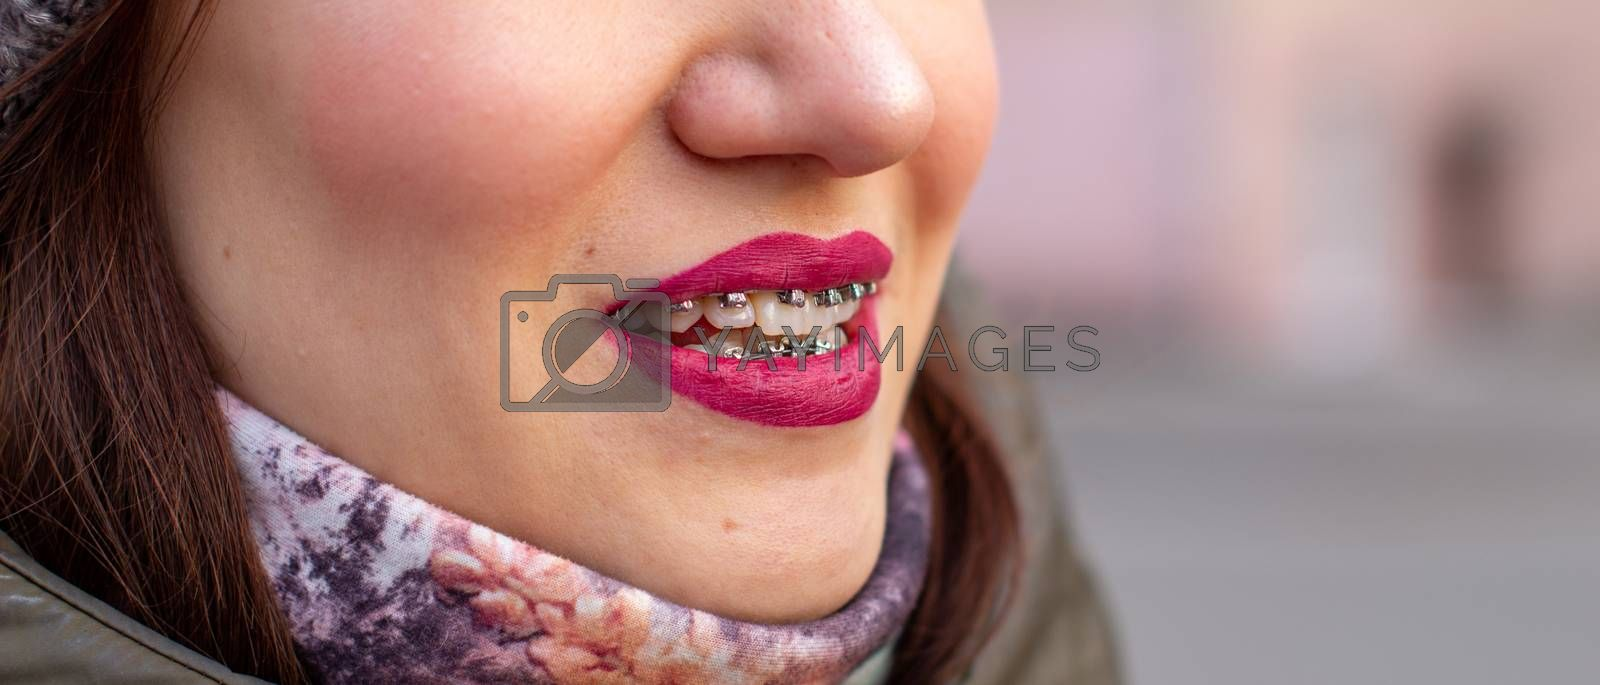 Brasket system in a girl's smiling mouth, macro photography of teeth, close-up of lips